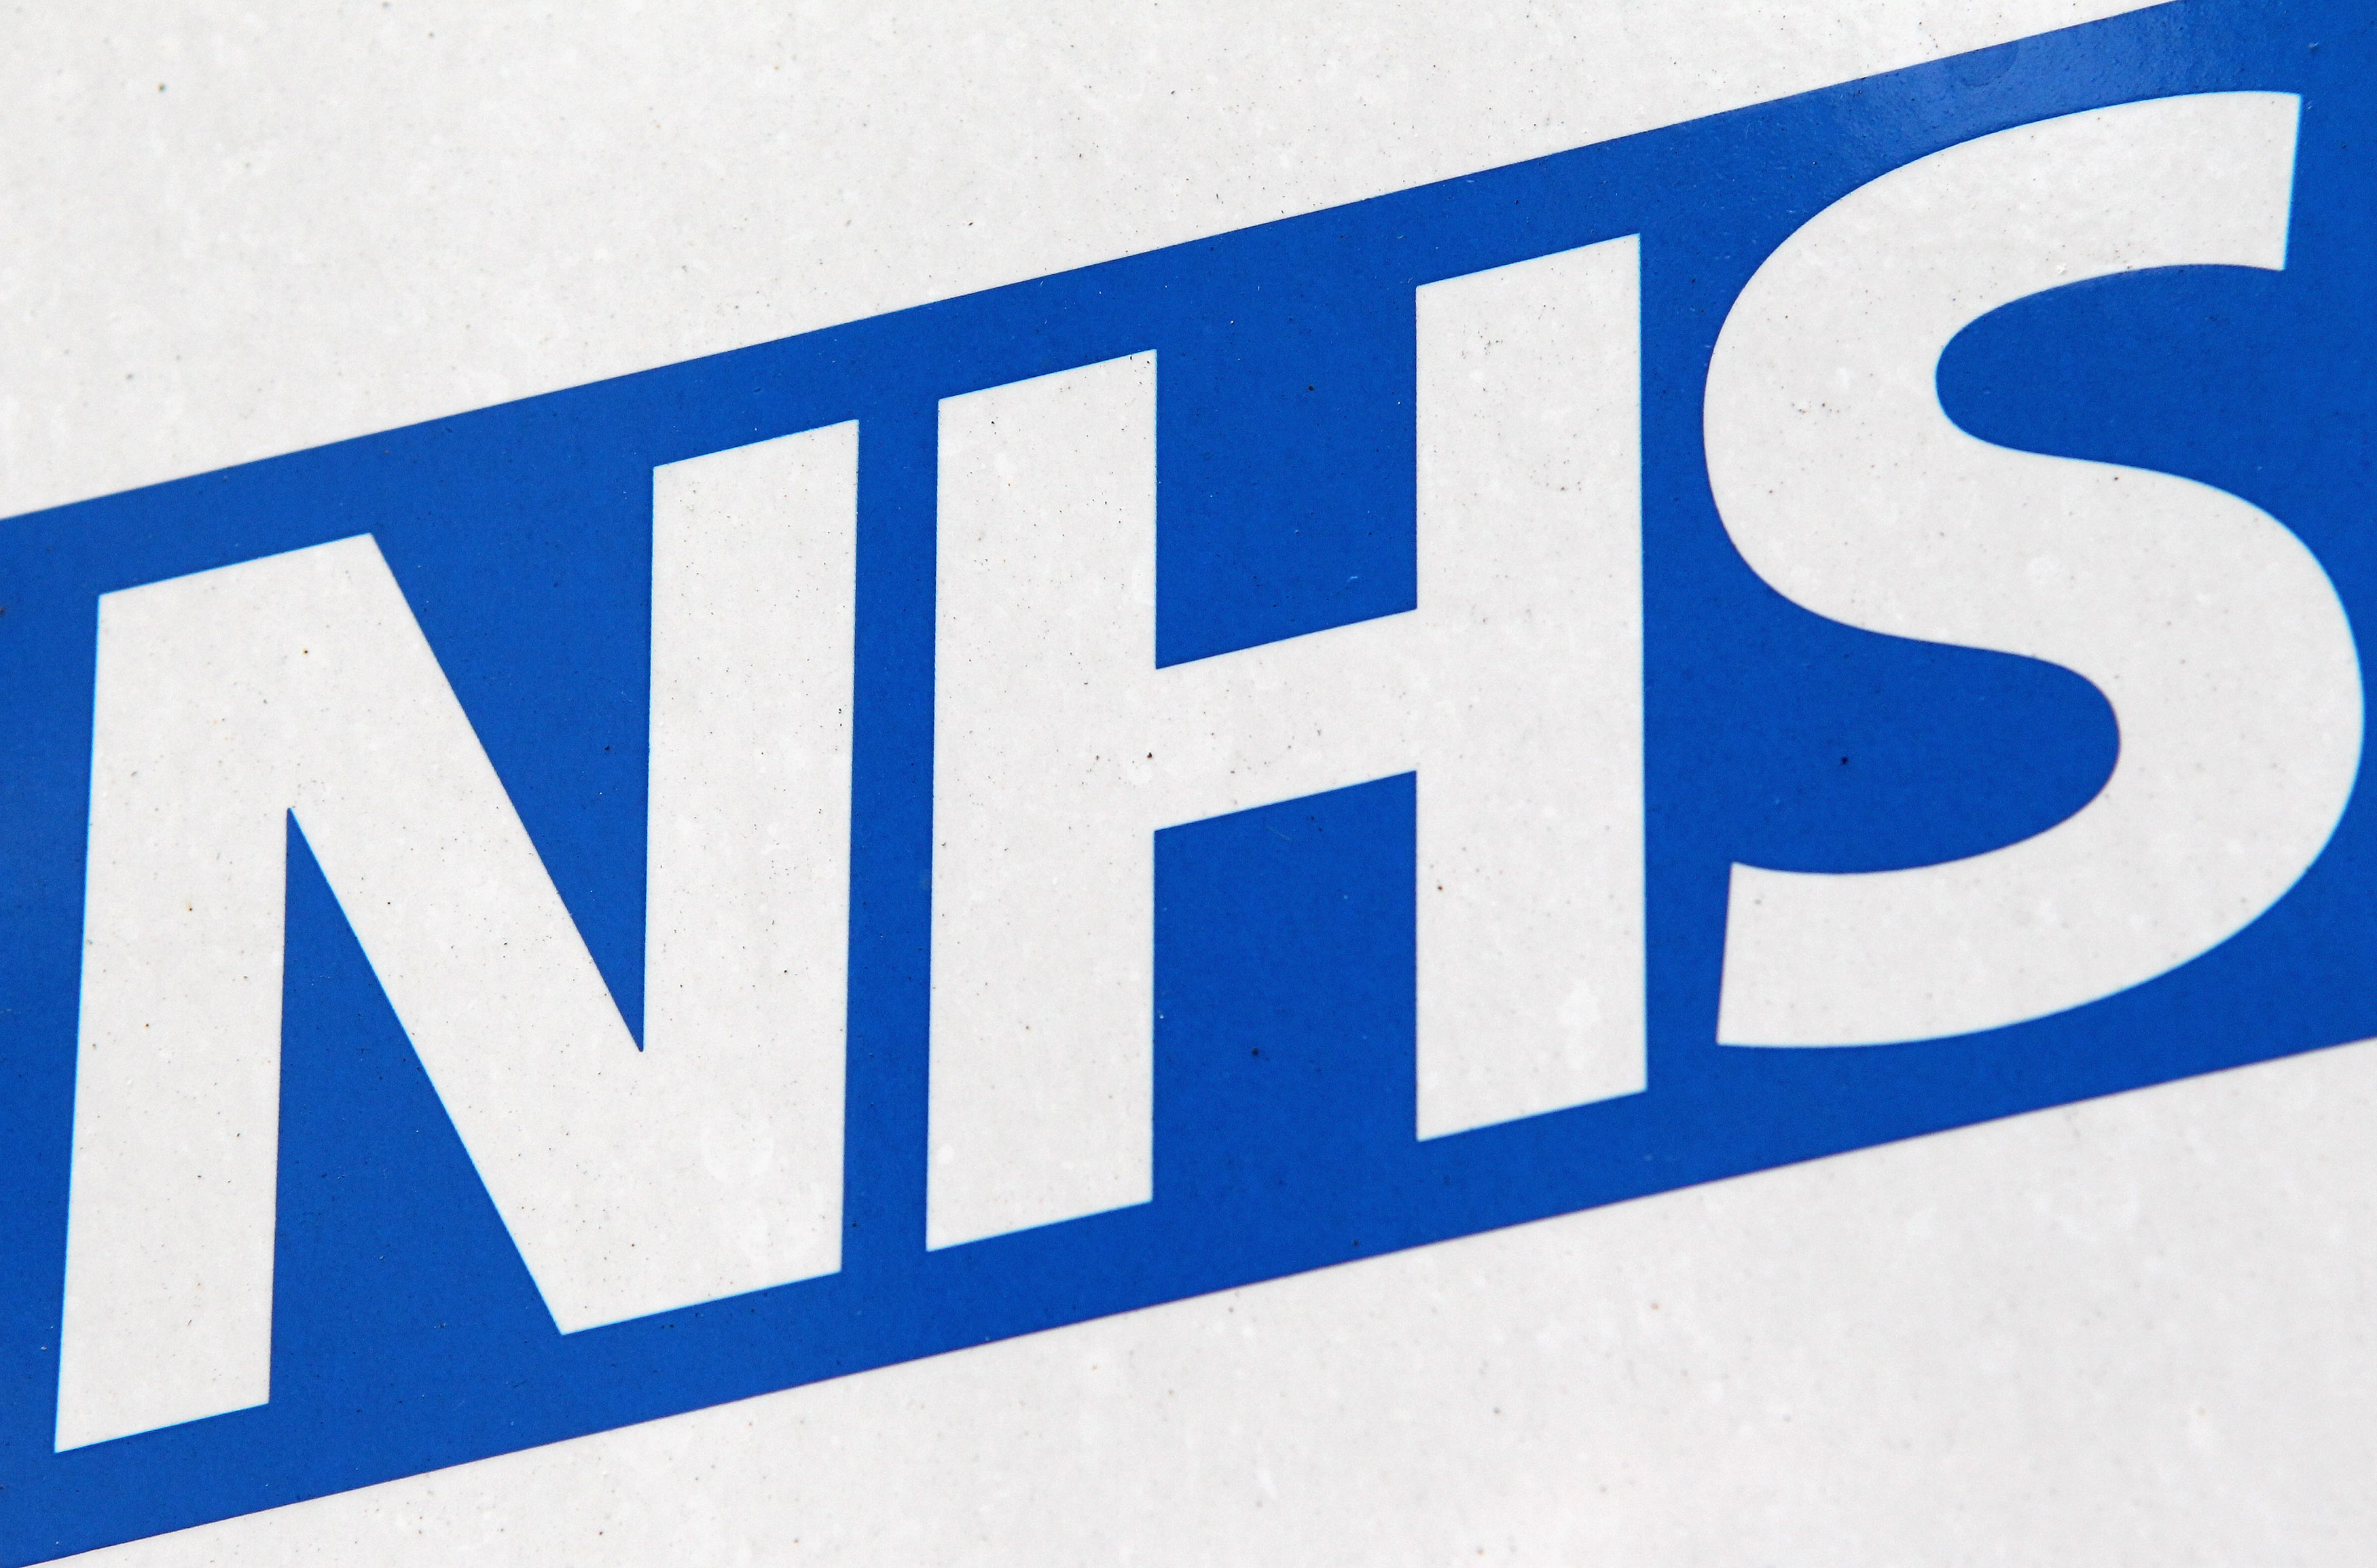 About the NHS